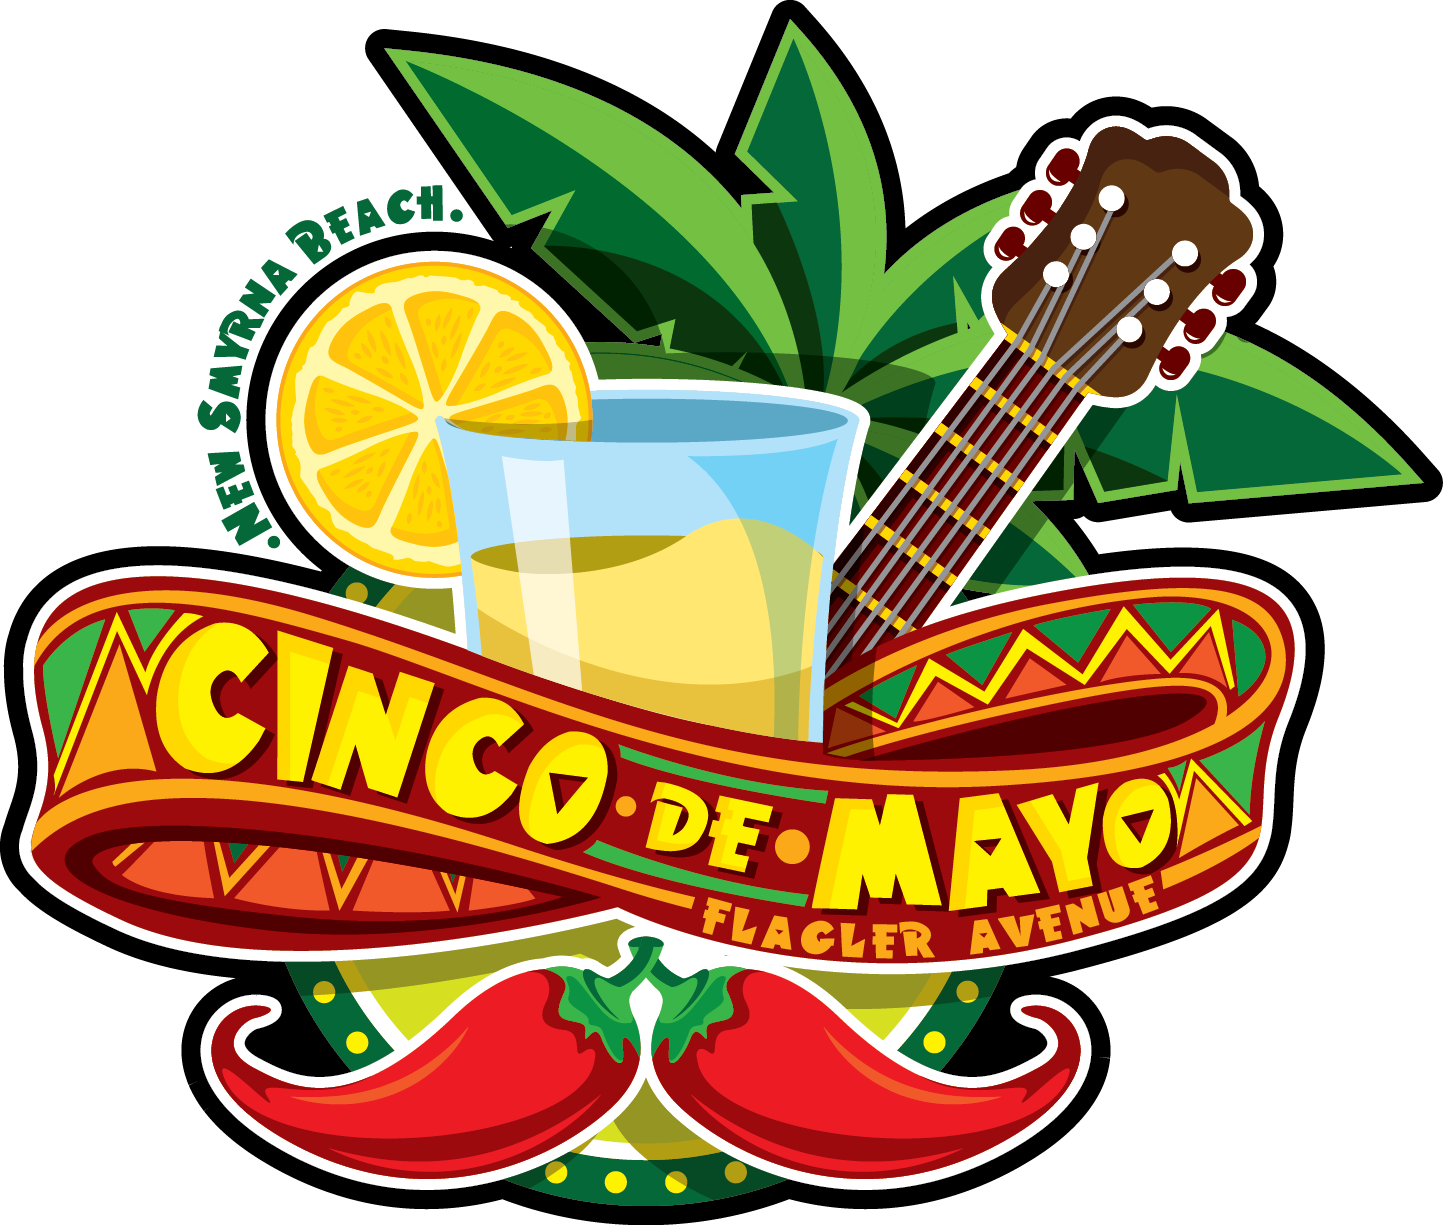 Cinco De Mayo Celebration Tacos Tequila Festival Flagler Avenue New Smyrna Beach